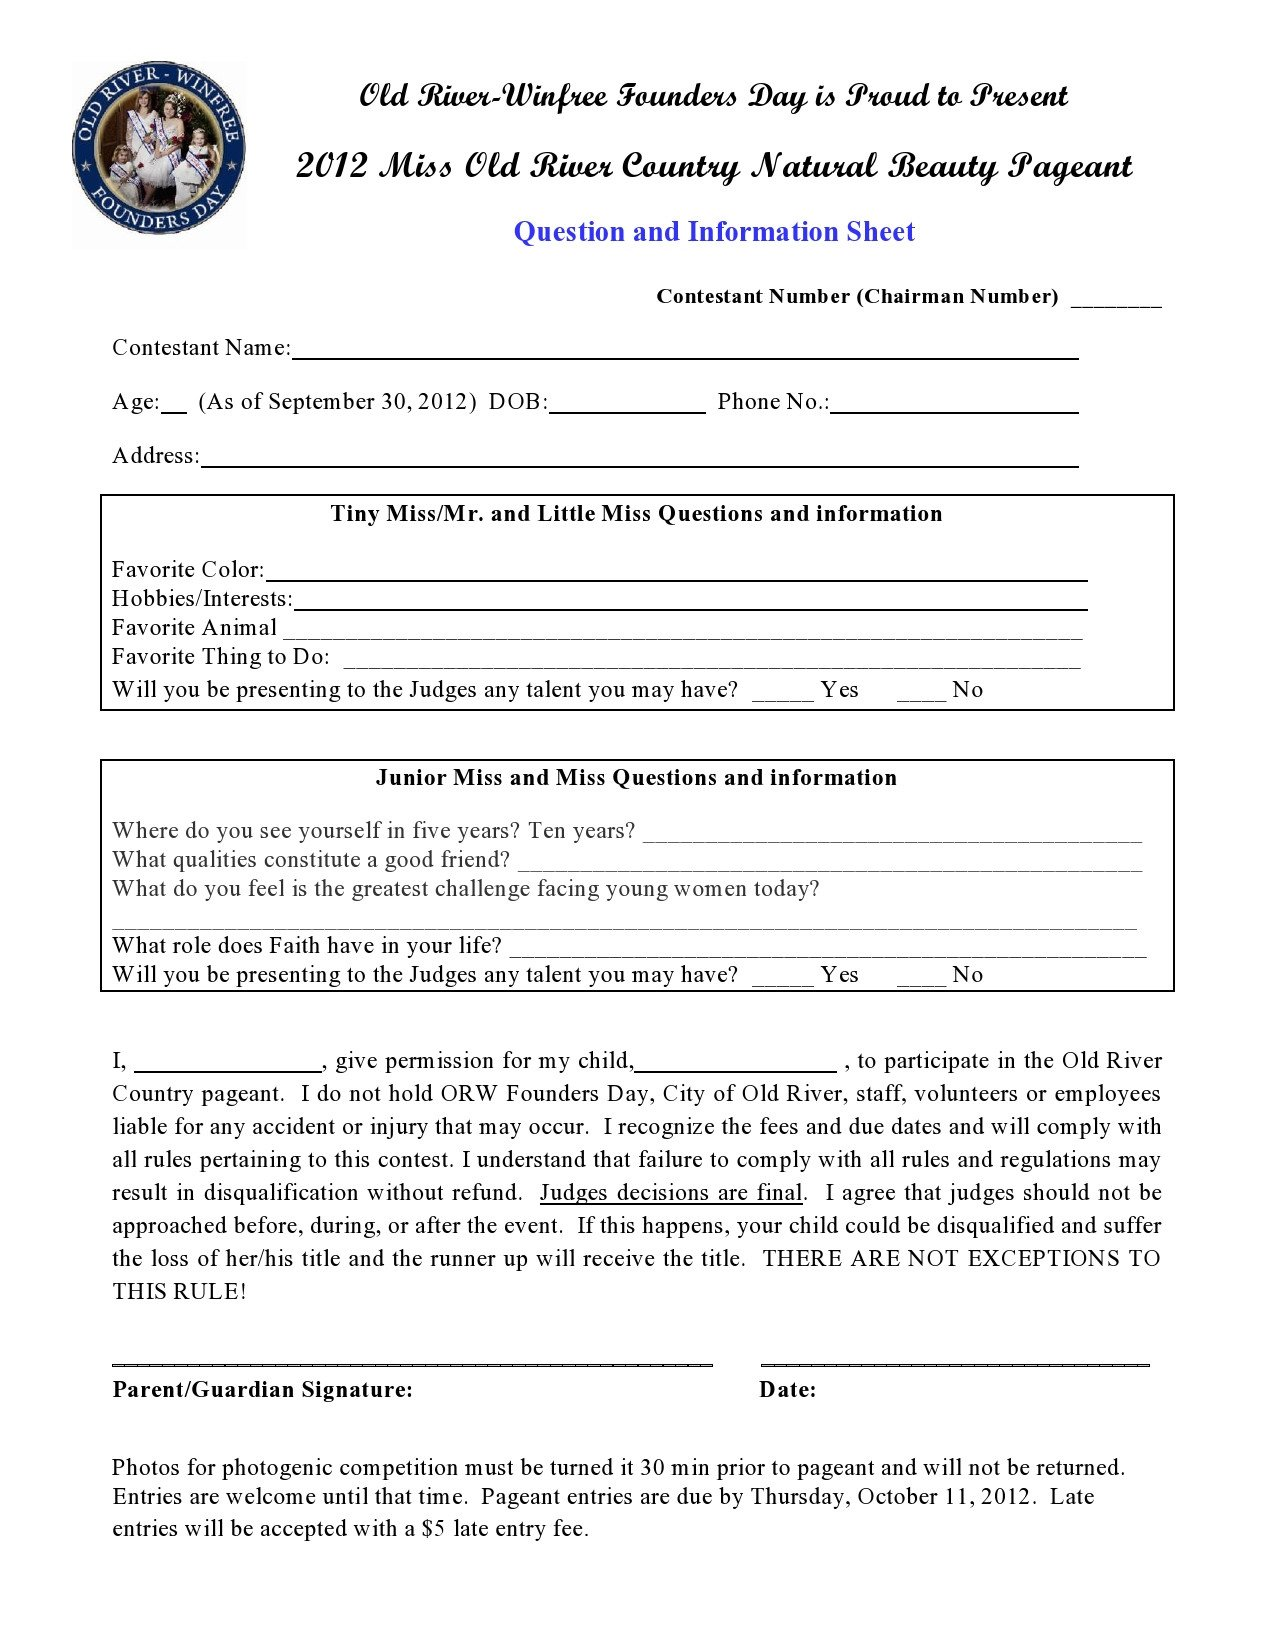 Pageant Entry form Template Mwcc Natural Beauty Pageant